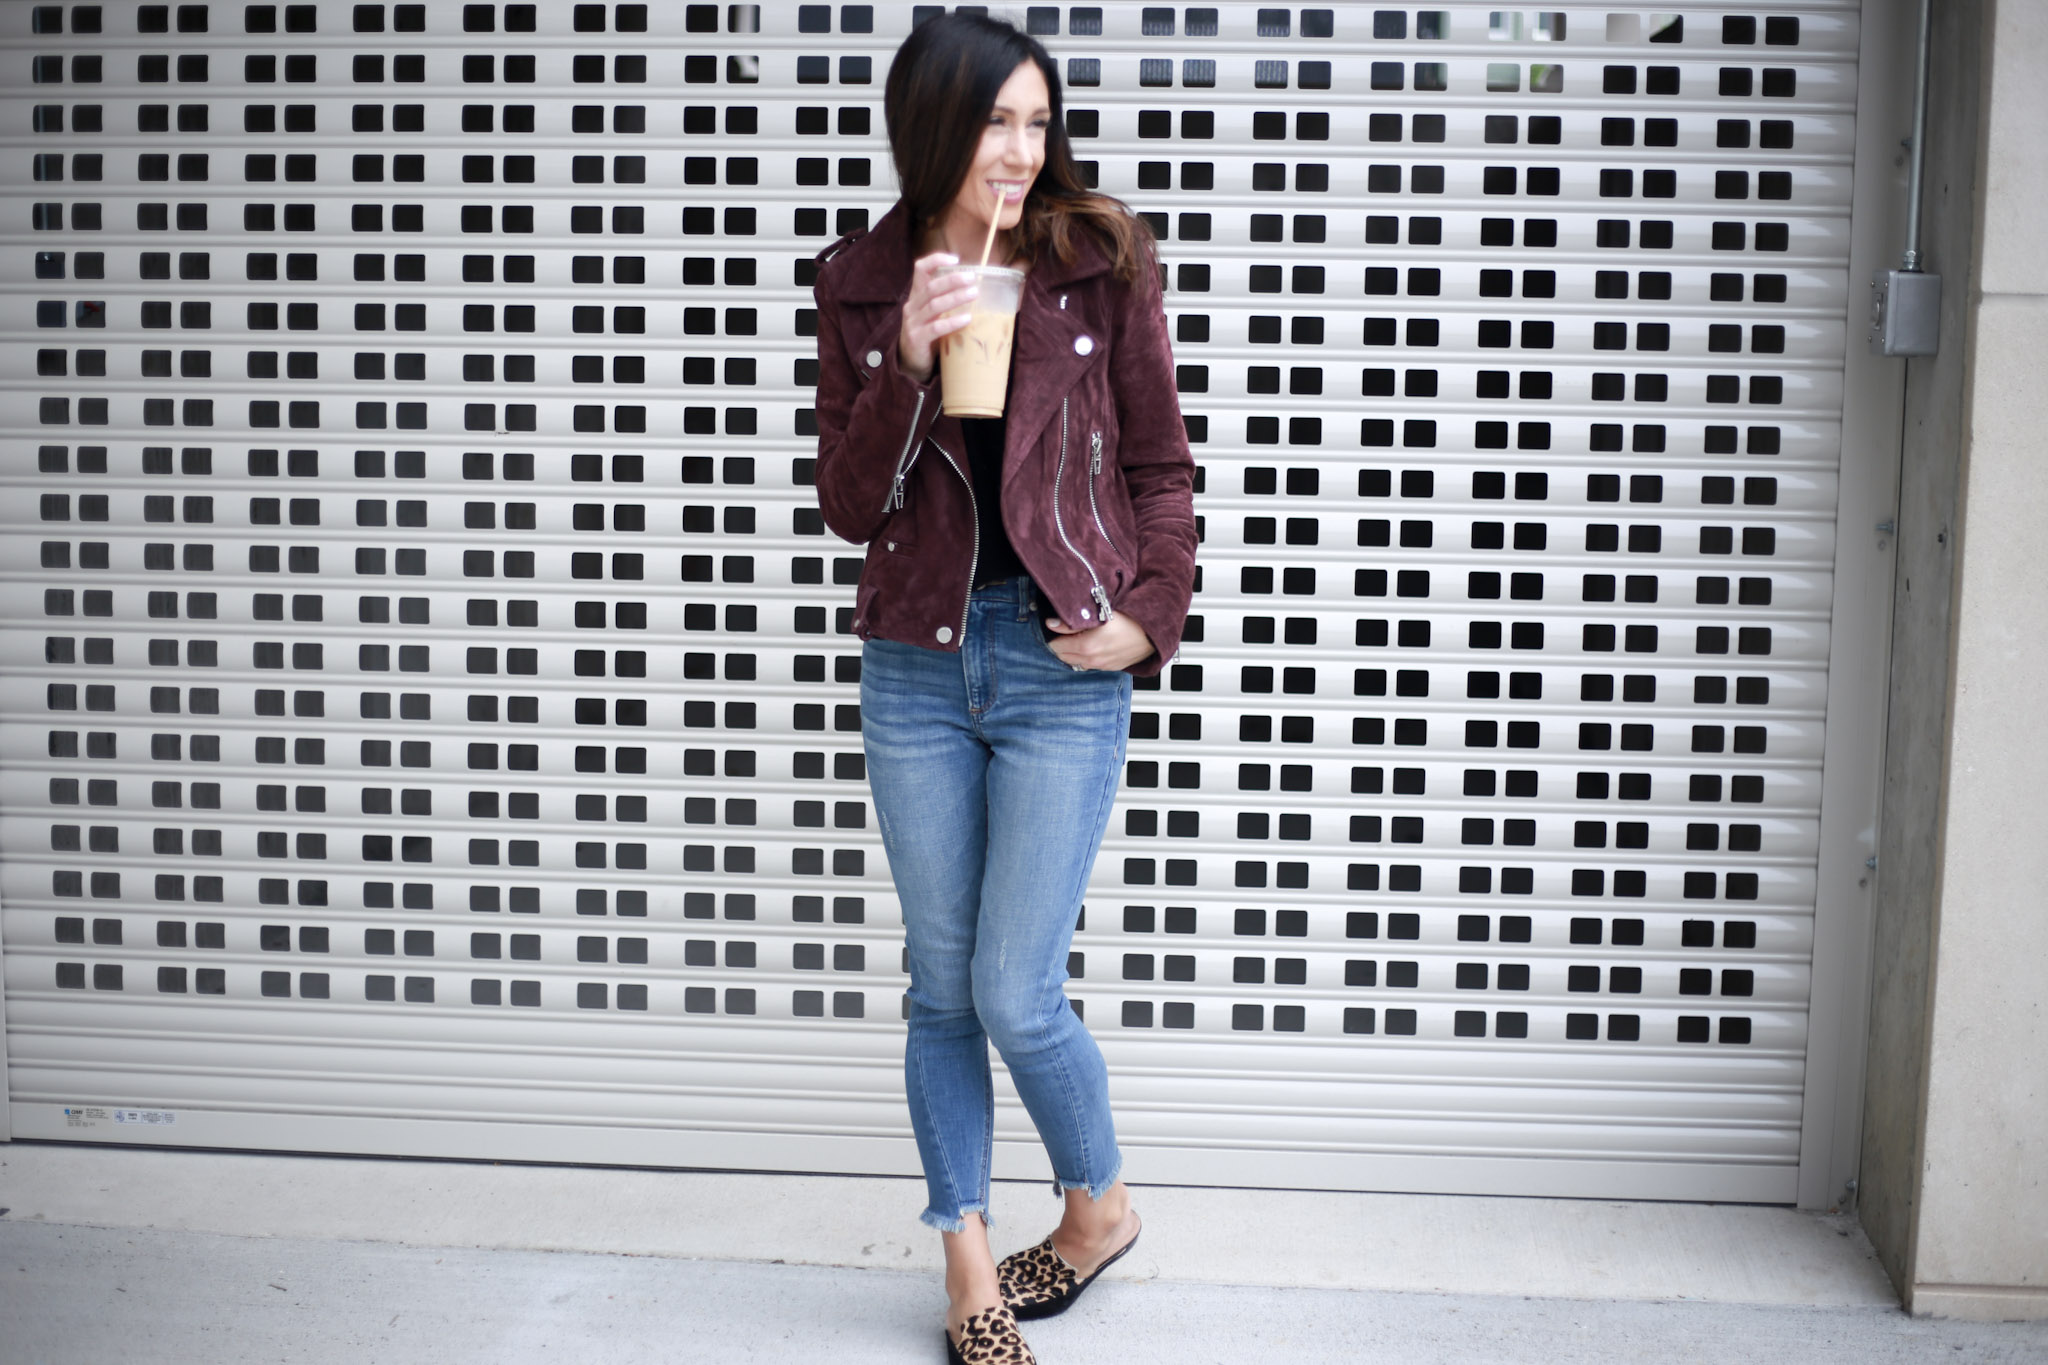 Capsule Wardrobe Series: Moto Jacket by Boston fashion blogger Living Life Pretty